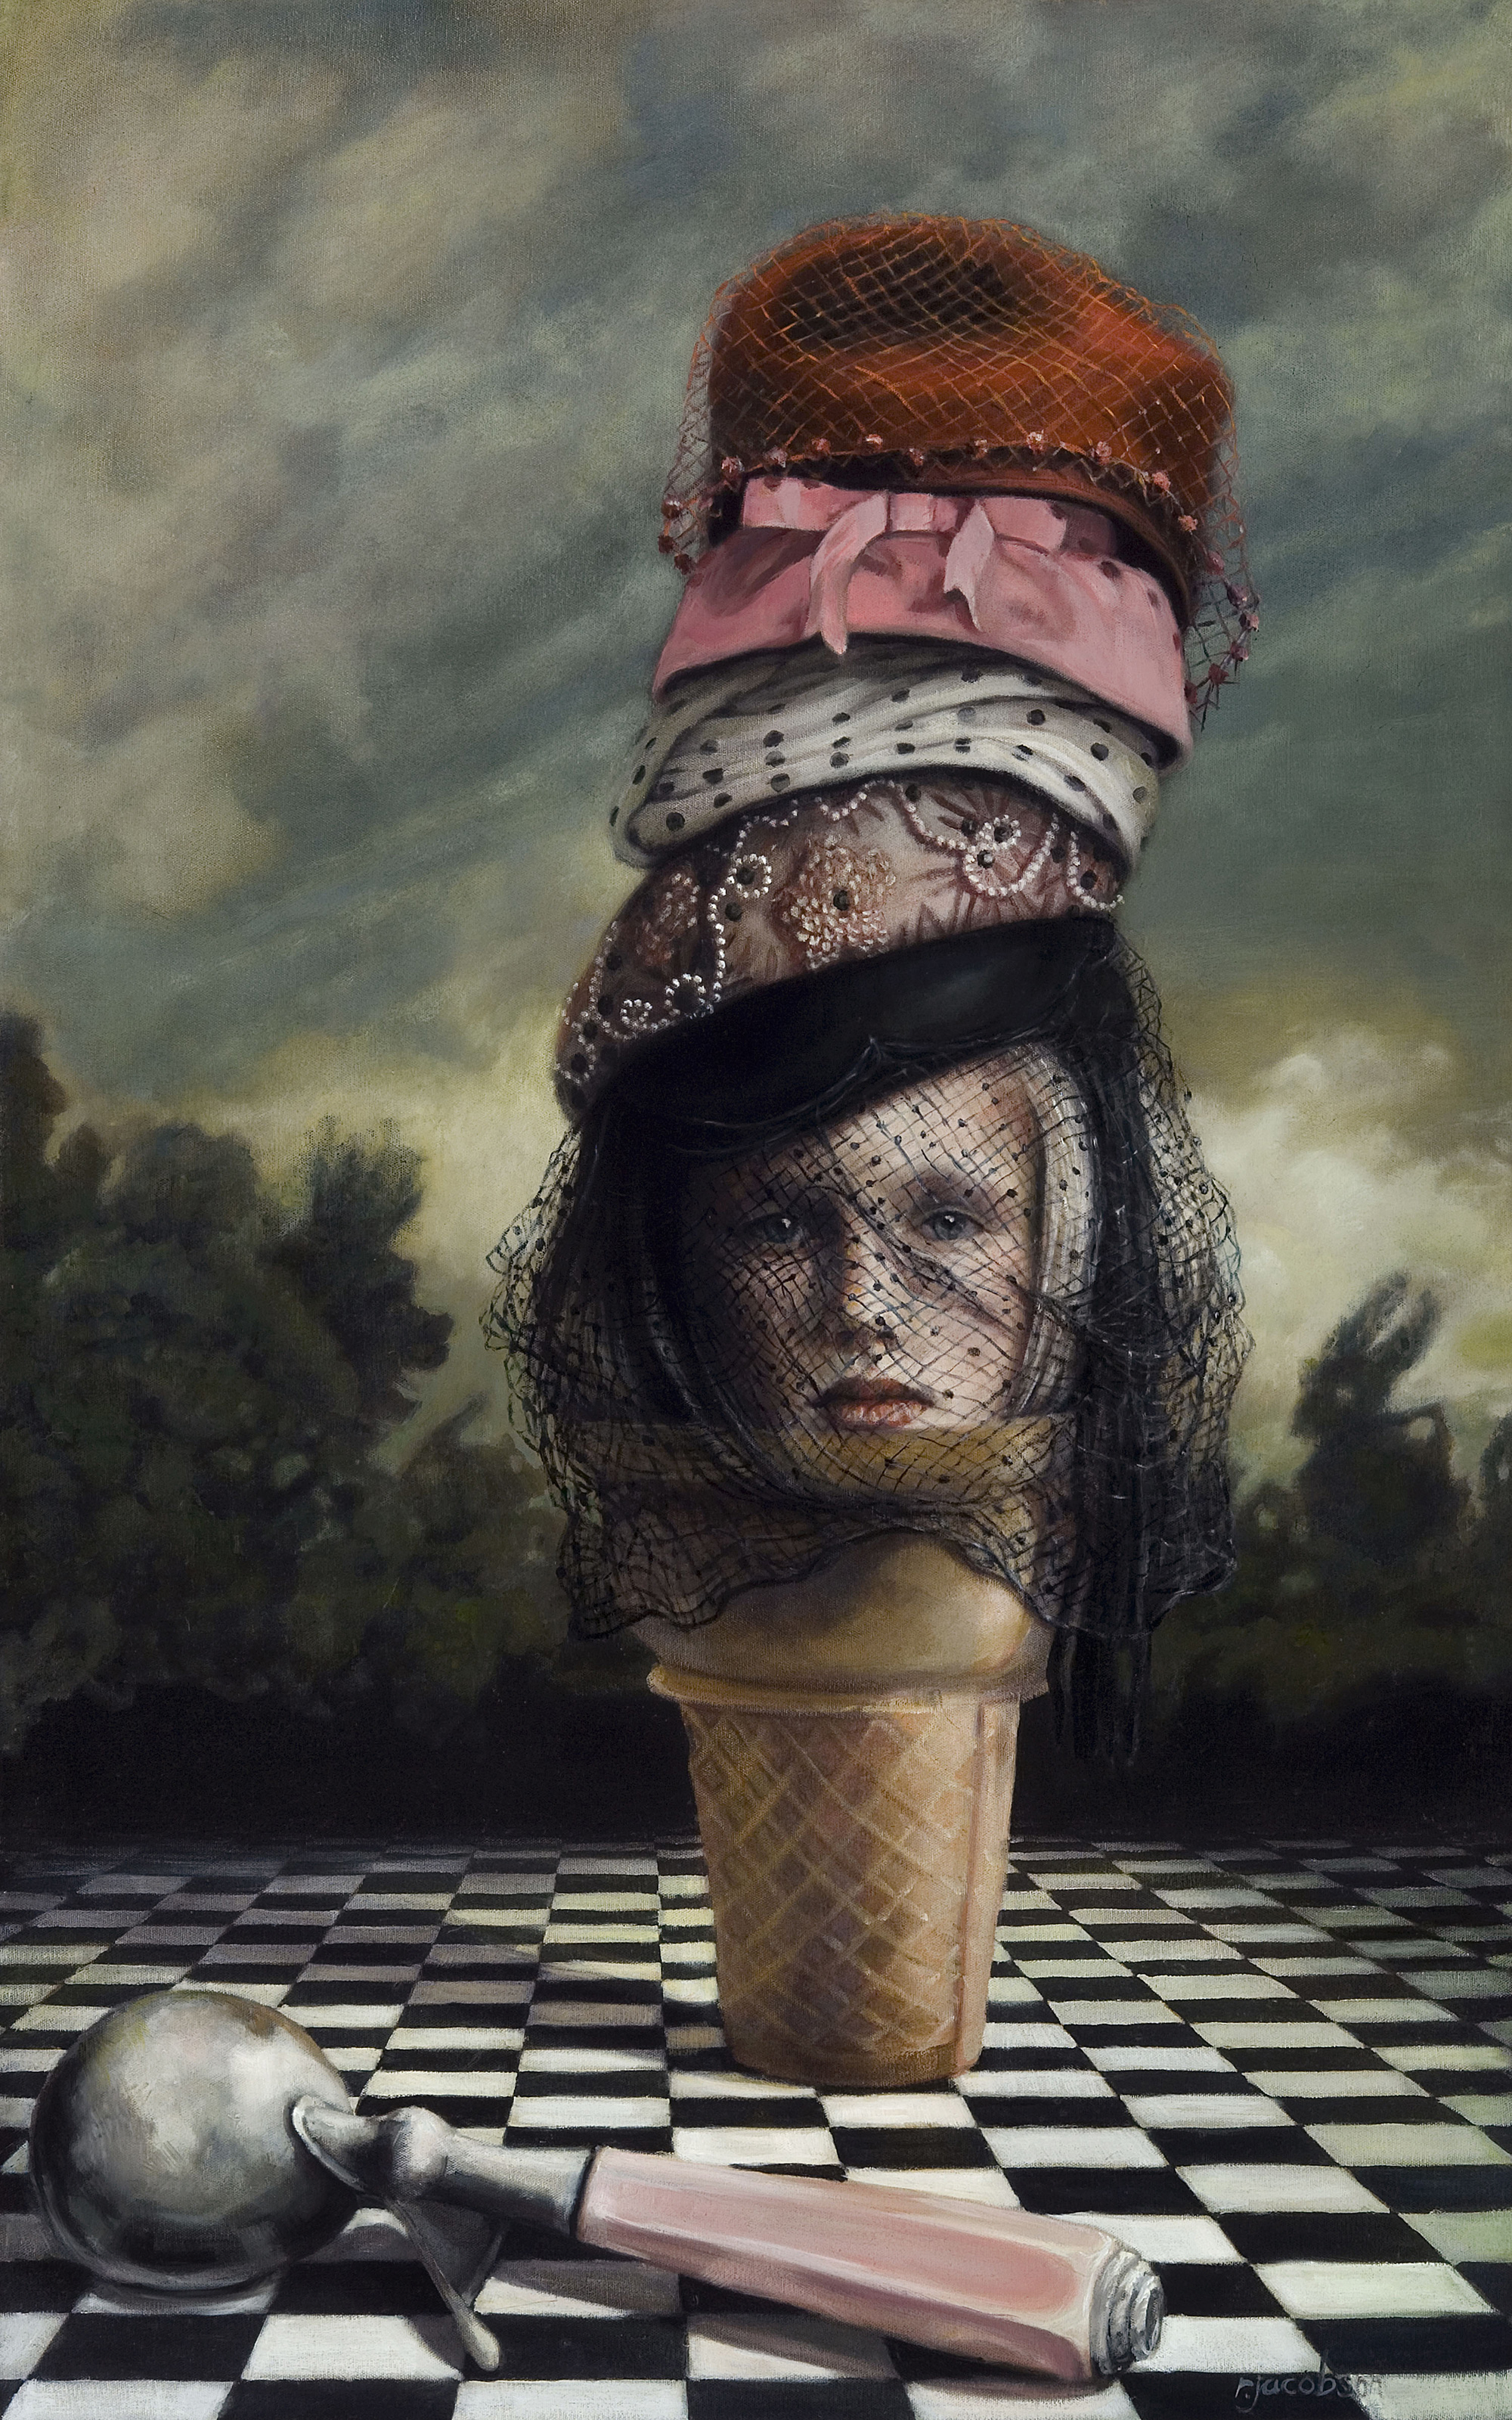 "Wearing My Sundae Best 48 x 30"", oil on canvas"